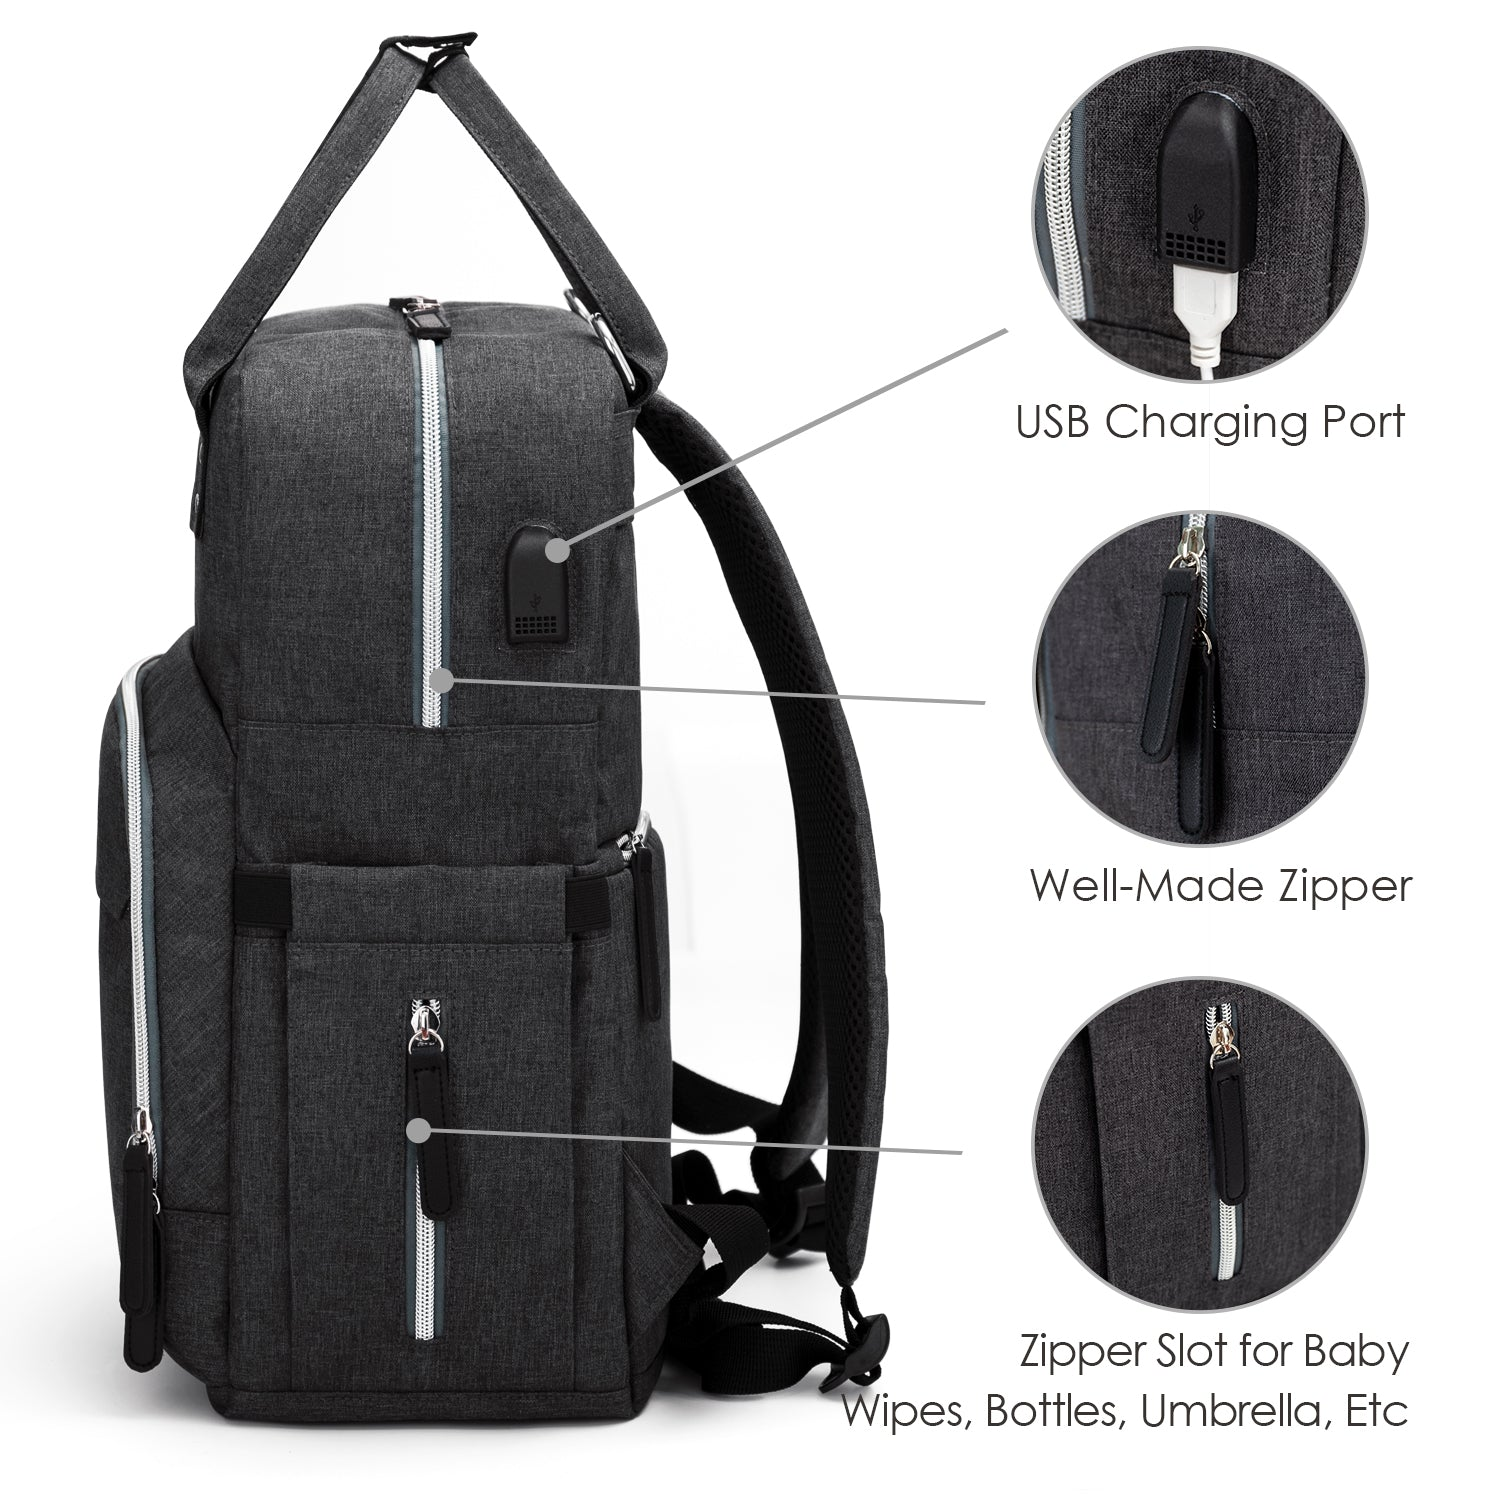 b71483c3aadd Diaper Bag Backpack Upsimples Multi-Function Maternity Nappy Bags for Mom    Dad